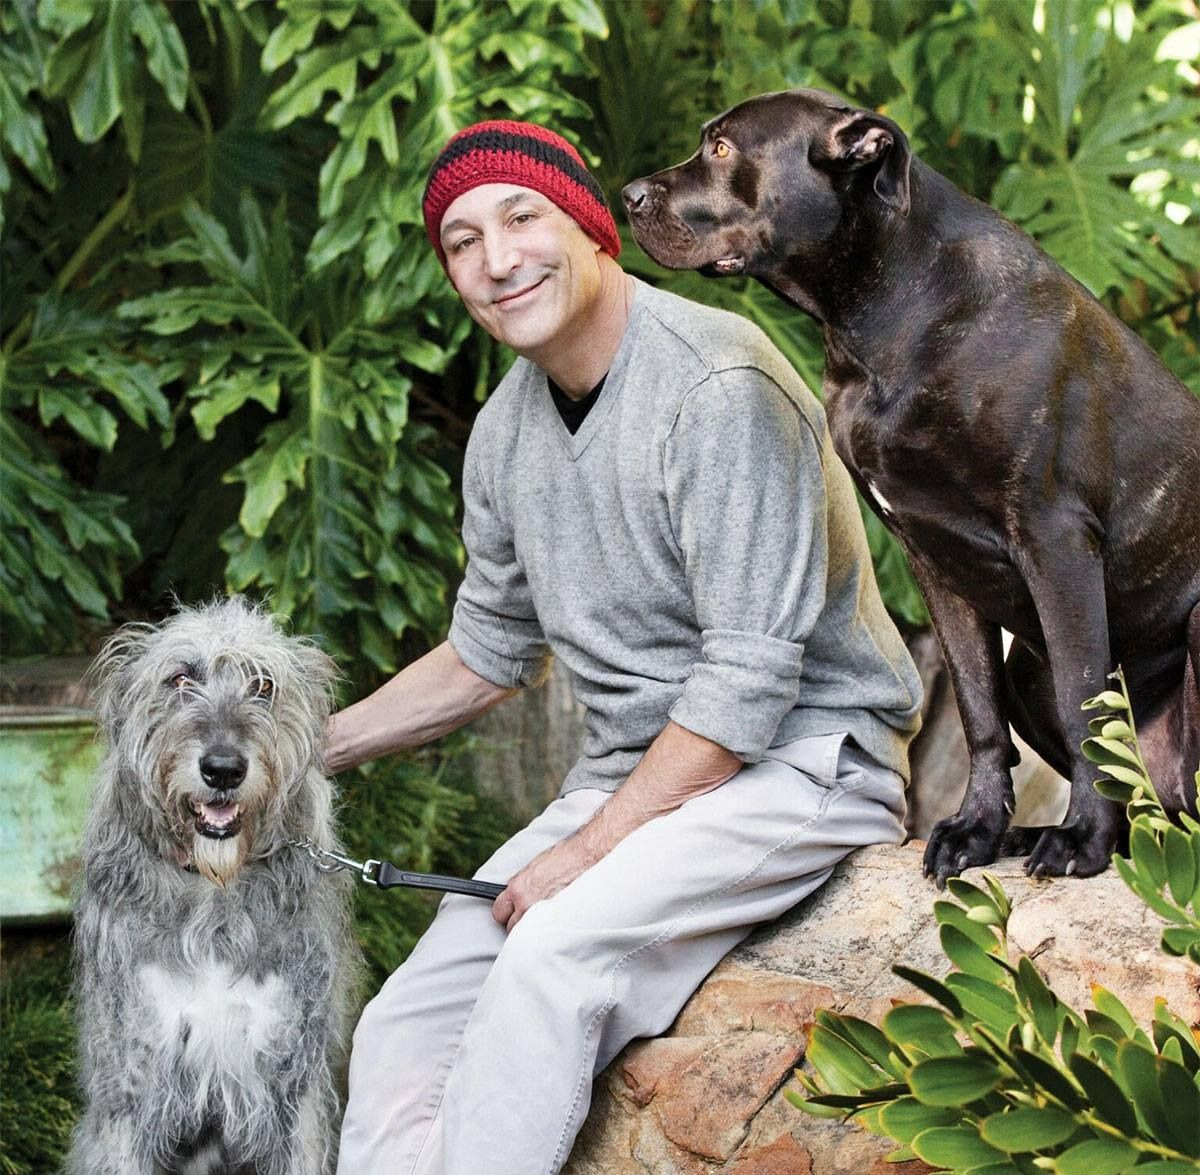 """When co-creator of 'The Simpsons', Sam Simon was diagnosed with terminal cancer, he went on a spending spree – buying up notoriously cruel roadside zoos and circuses, because he wanted to """"see animals walk in grass for the first time"""". During his life, Sam has given millions away to animal causes and now plans to spend the rest of his days giving away the rest of his fortune to charity. On behalf of the animals, thank you Sam. — with Sam Simon."""